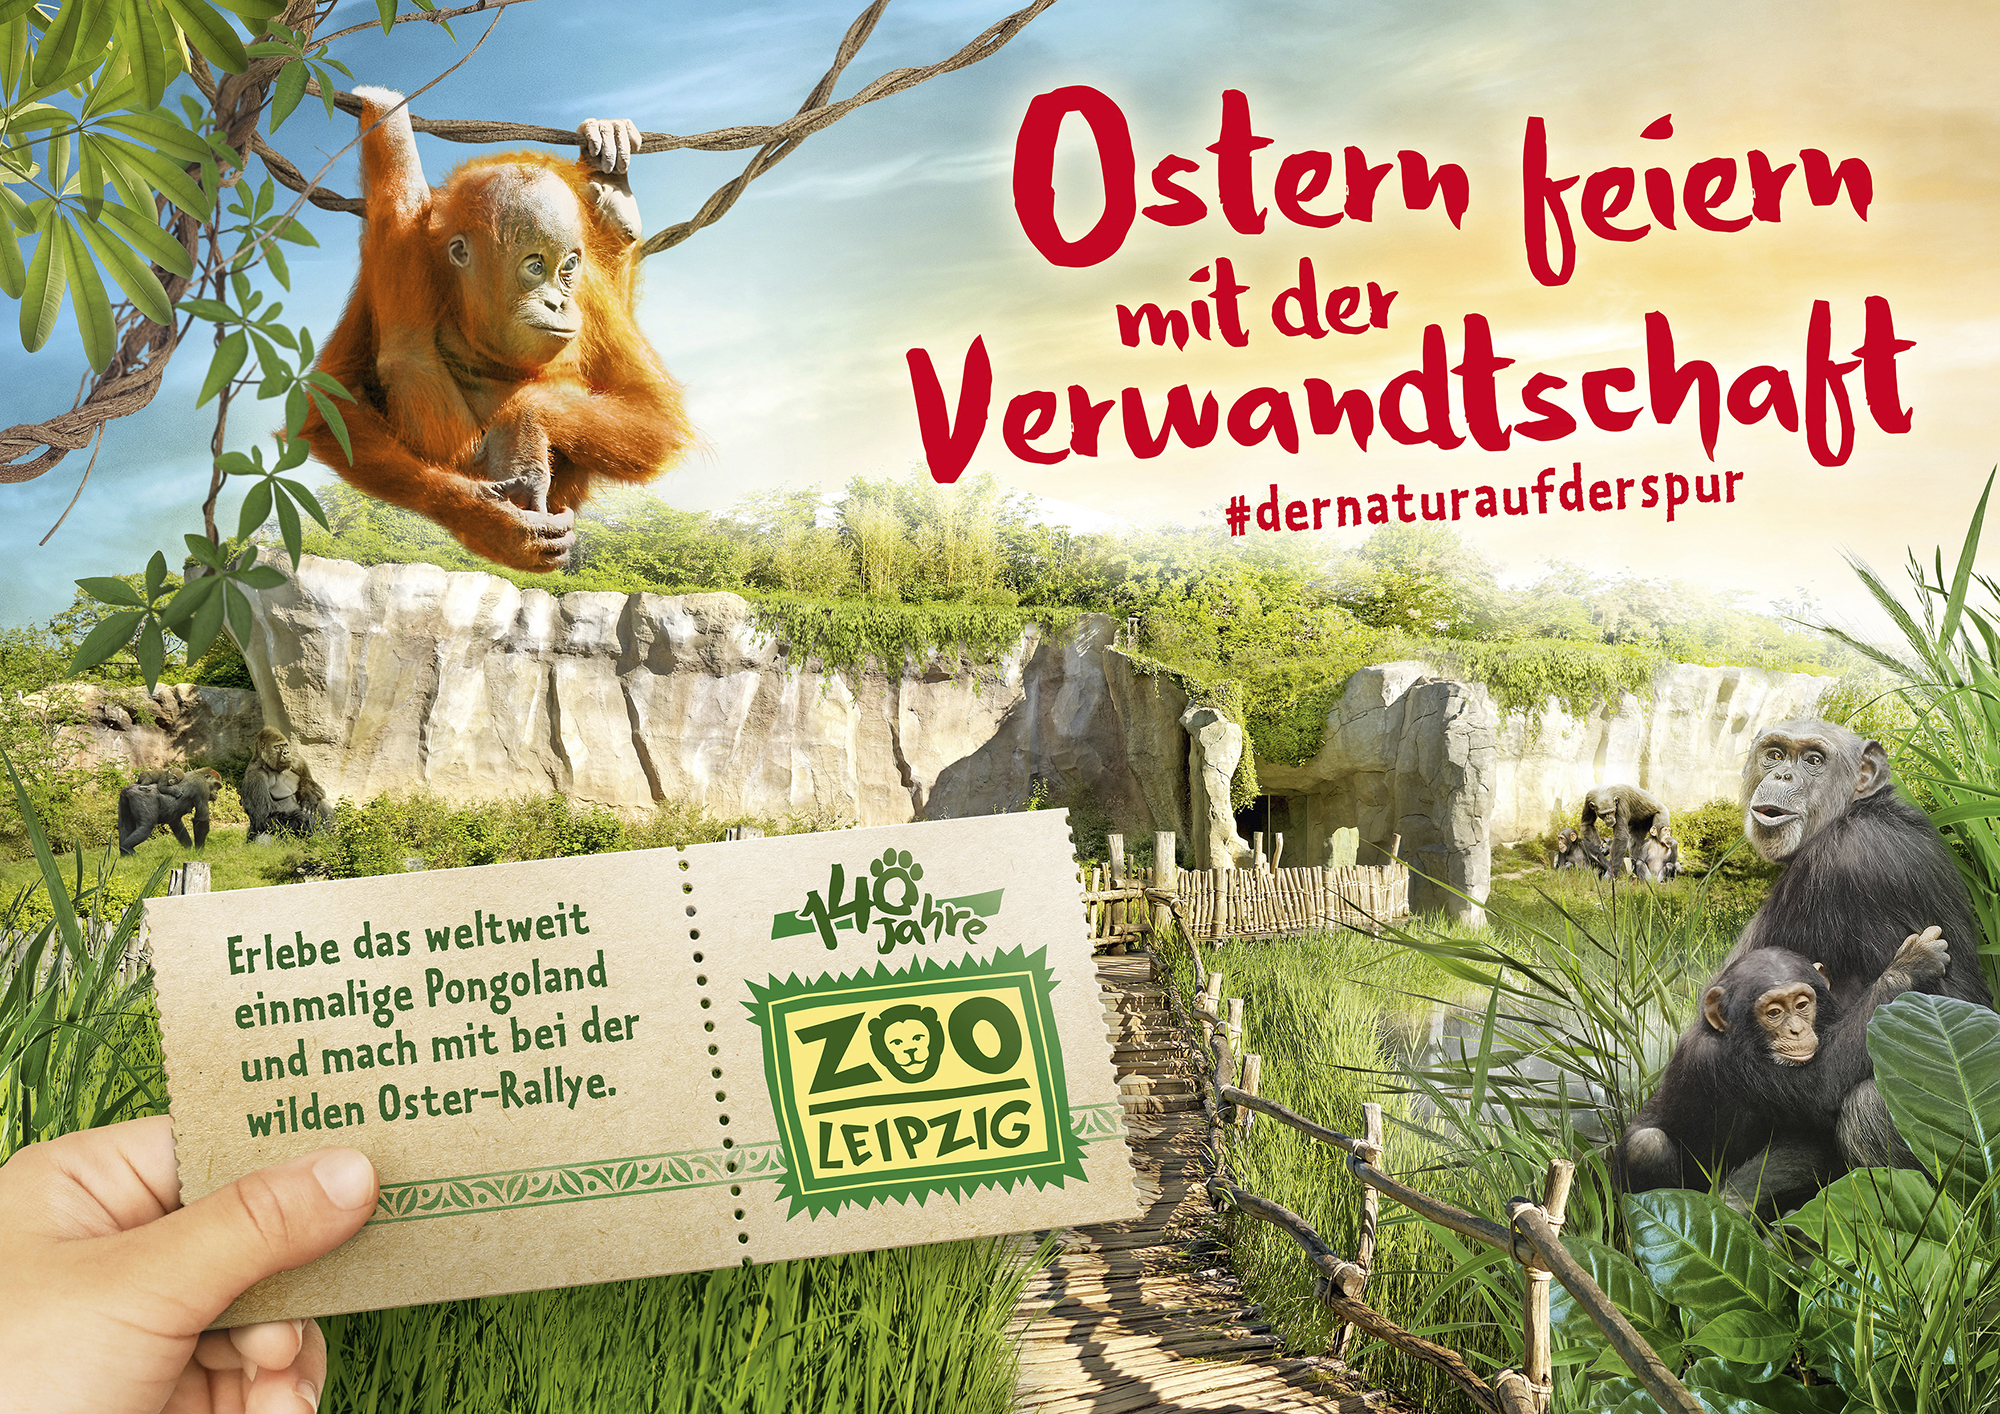 ETPTT, Zoo Leipzig, image editing, color correction, composing, clipping